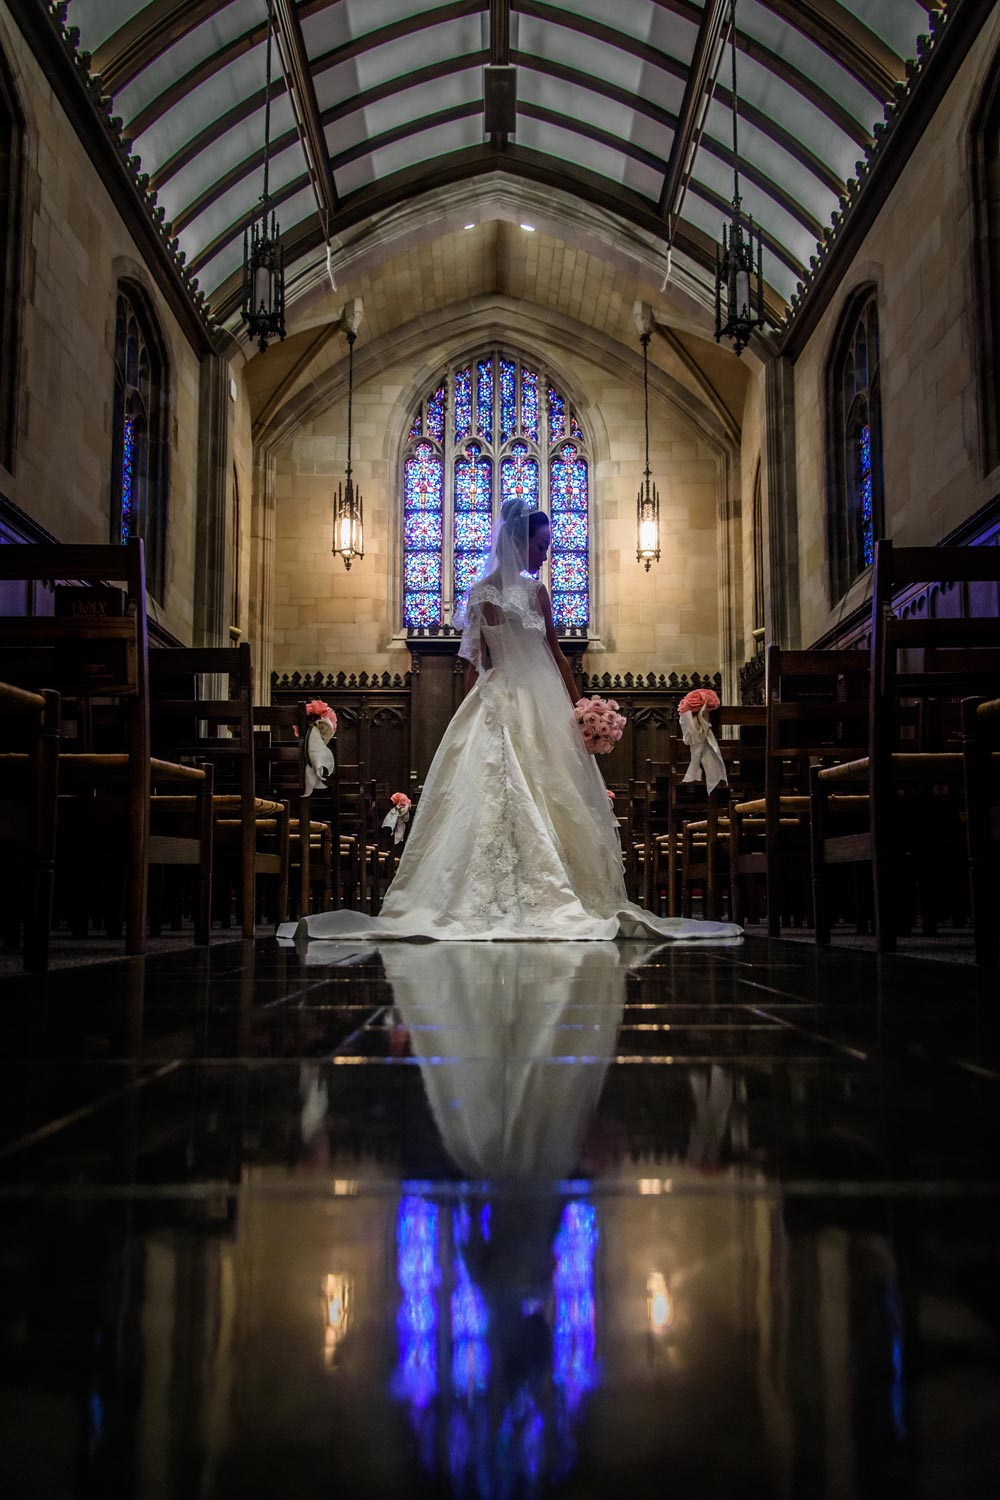 wedding-photographer-scott-walz-studio-walz237.jpg